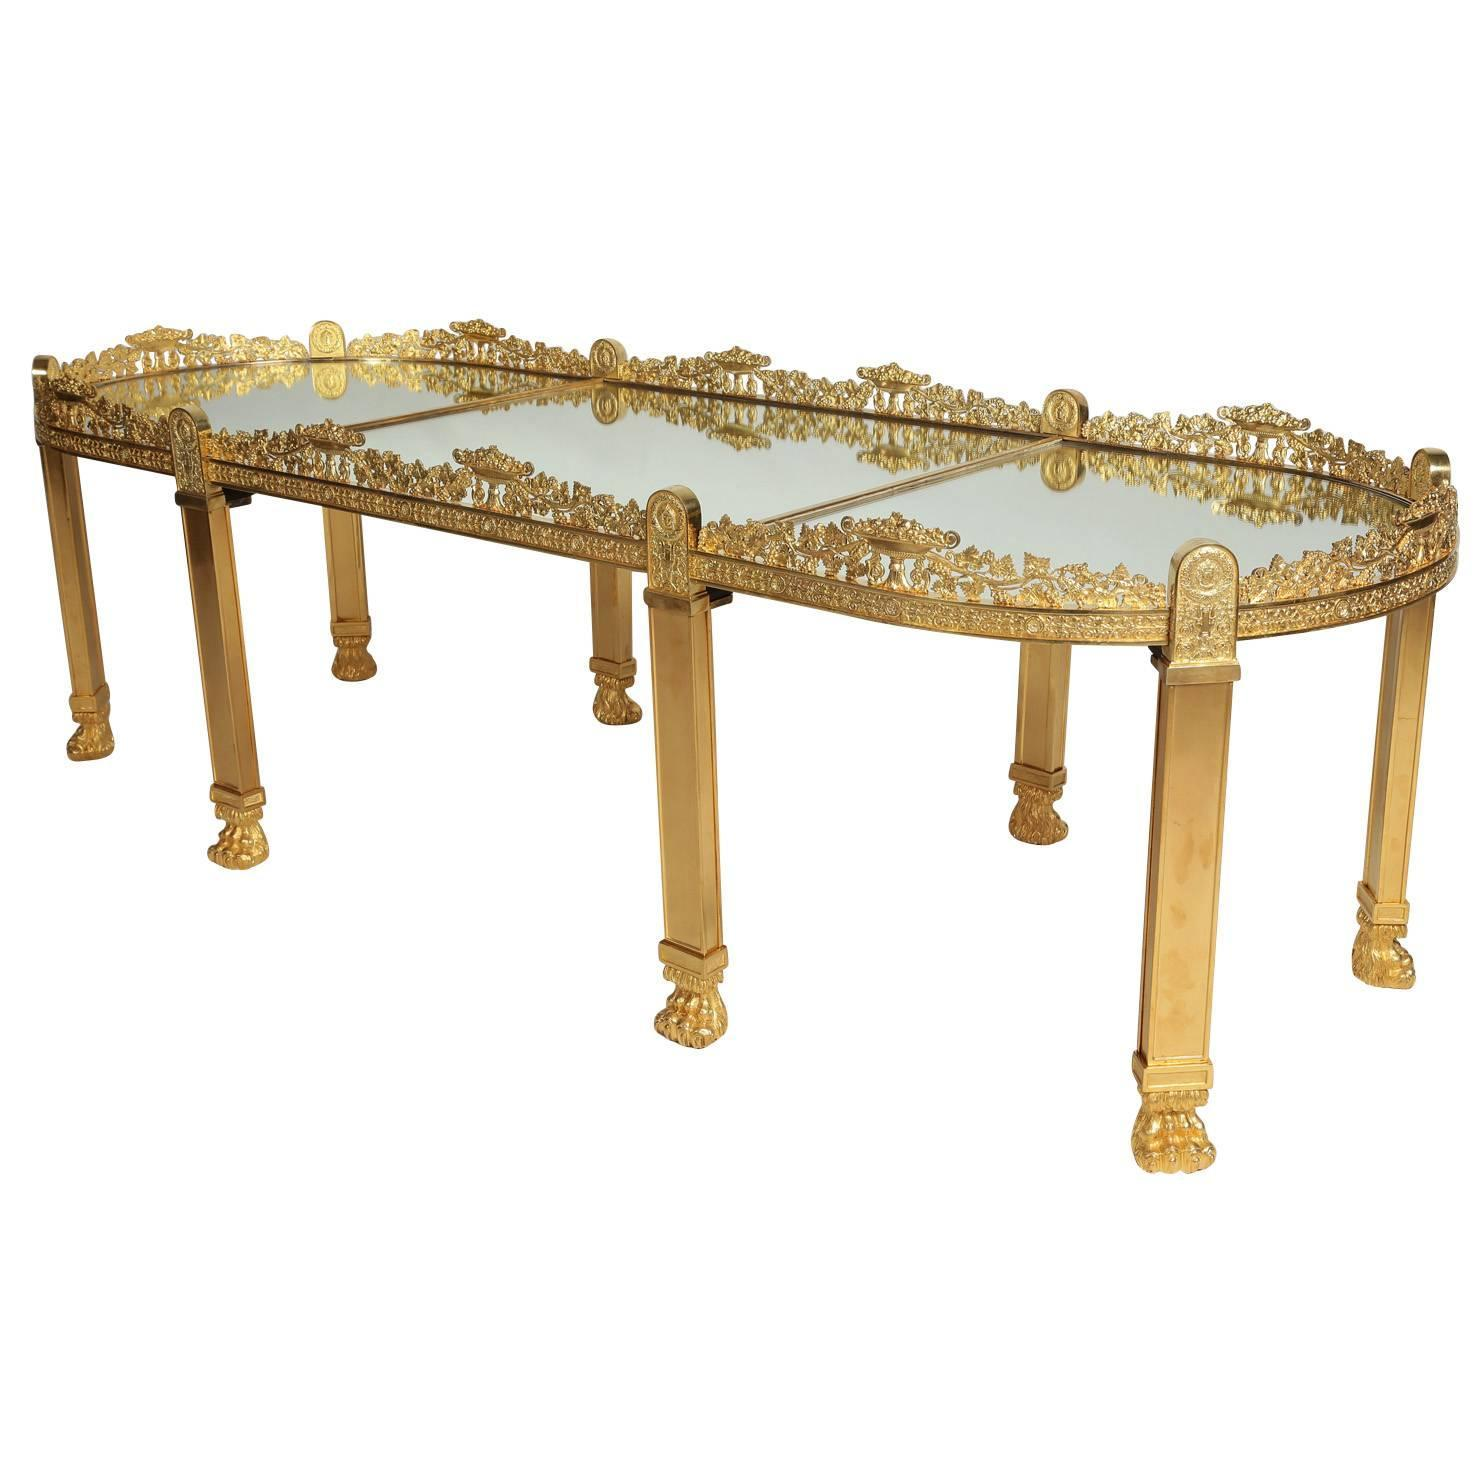 Large French Coffee Table: Large French Empire Style Napoleon III Gilt-Bronze Surtout